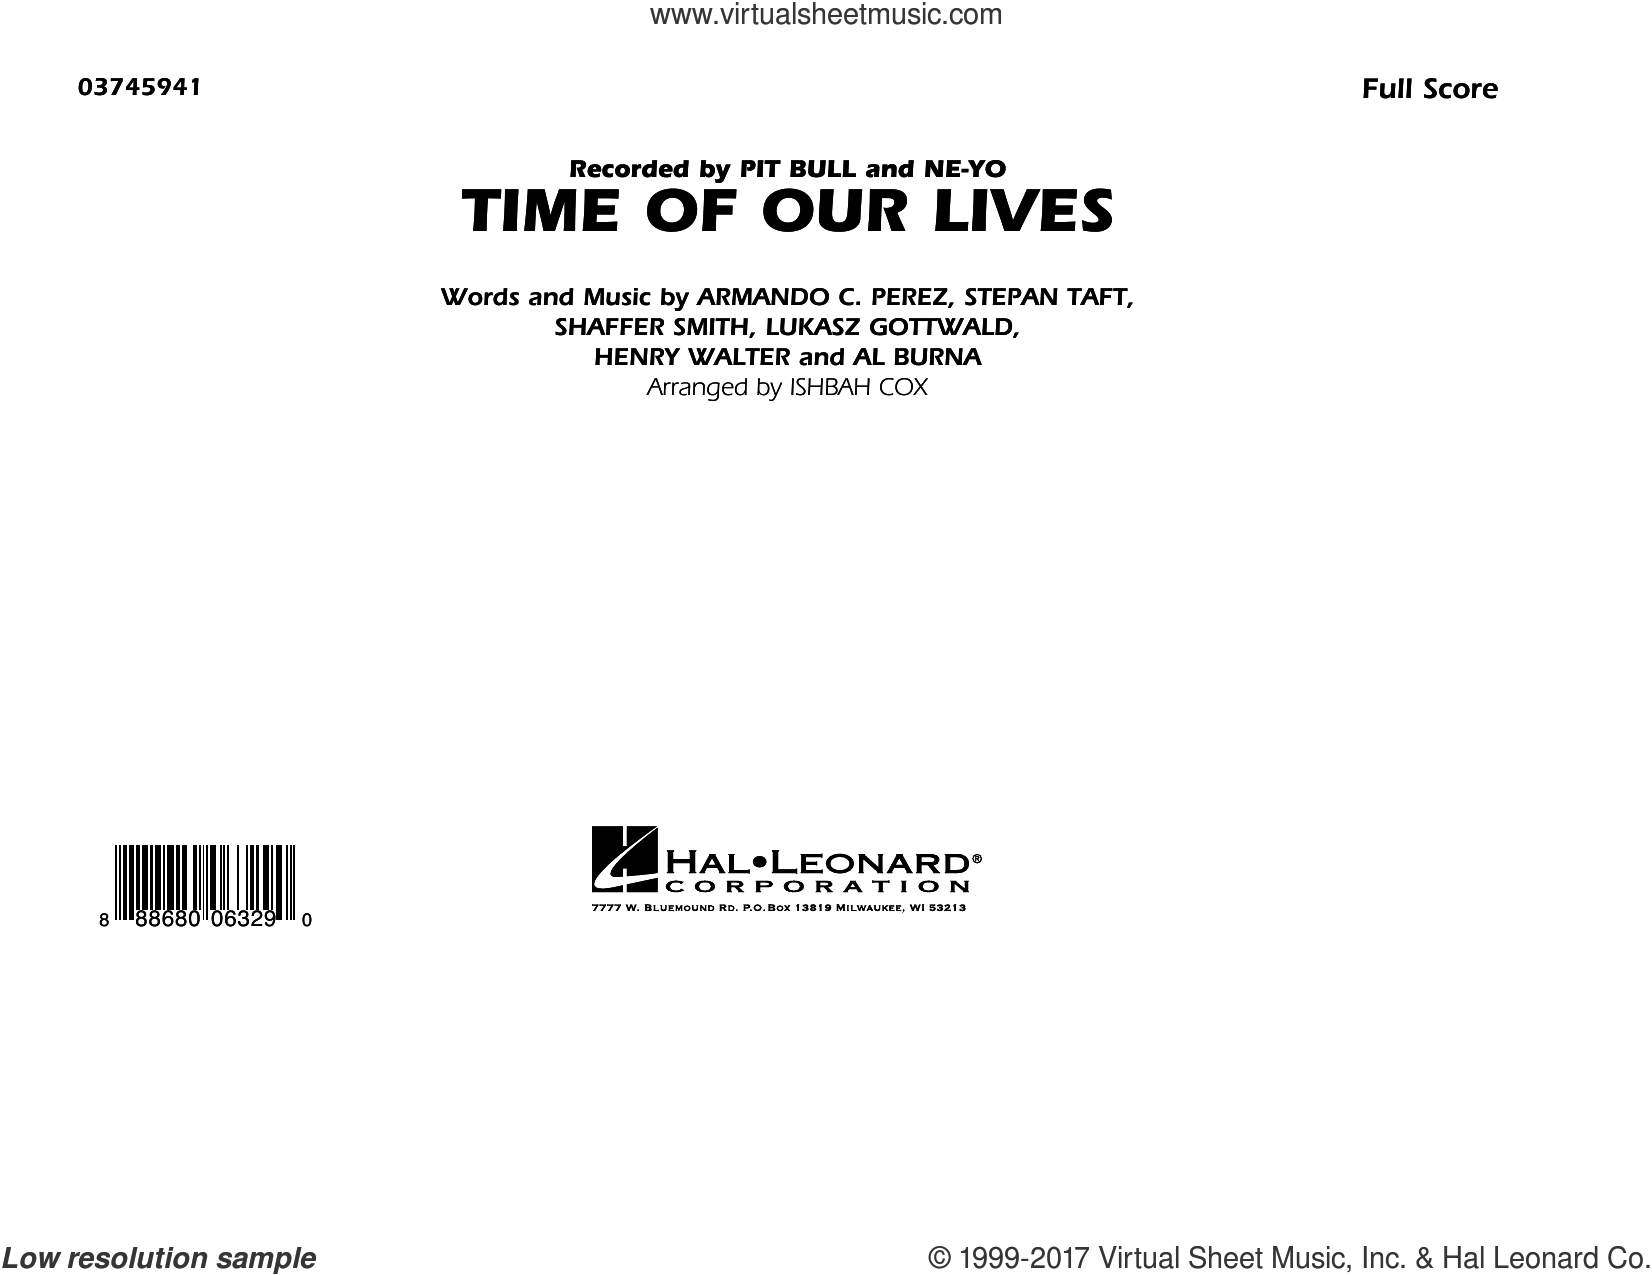 Time of Our Lives (COMPLETE) sheet music for marching band by Shaffer Smith, Al Burna, Armando C. Perez, Henry Walter, Ishbah Cox, Lukasz Gottwald, Pitbull & Ne-Yo and Stepan Taft, intermediate skill level